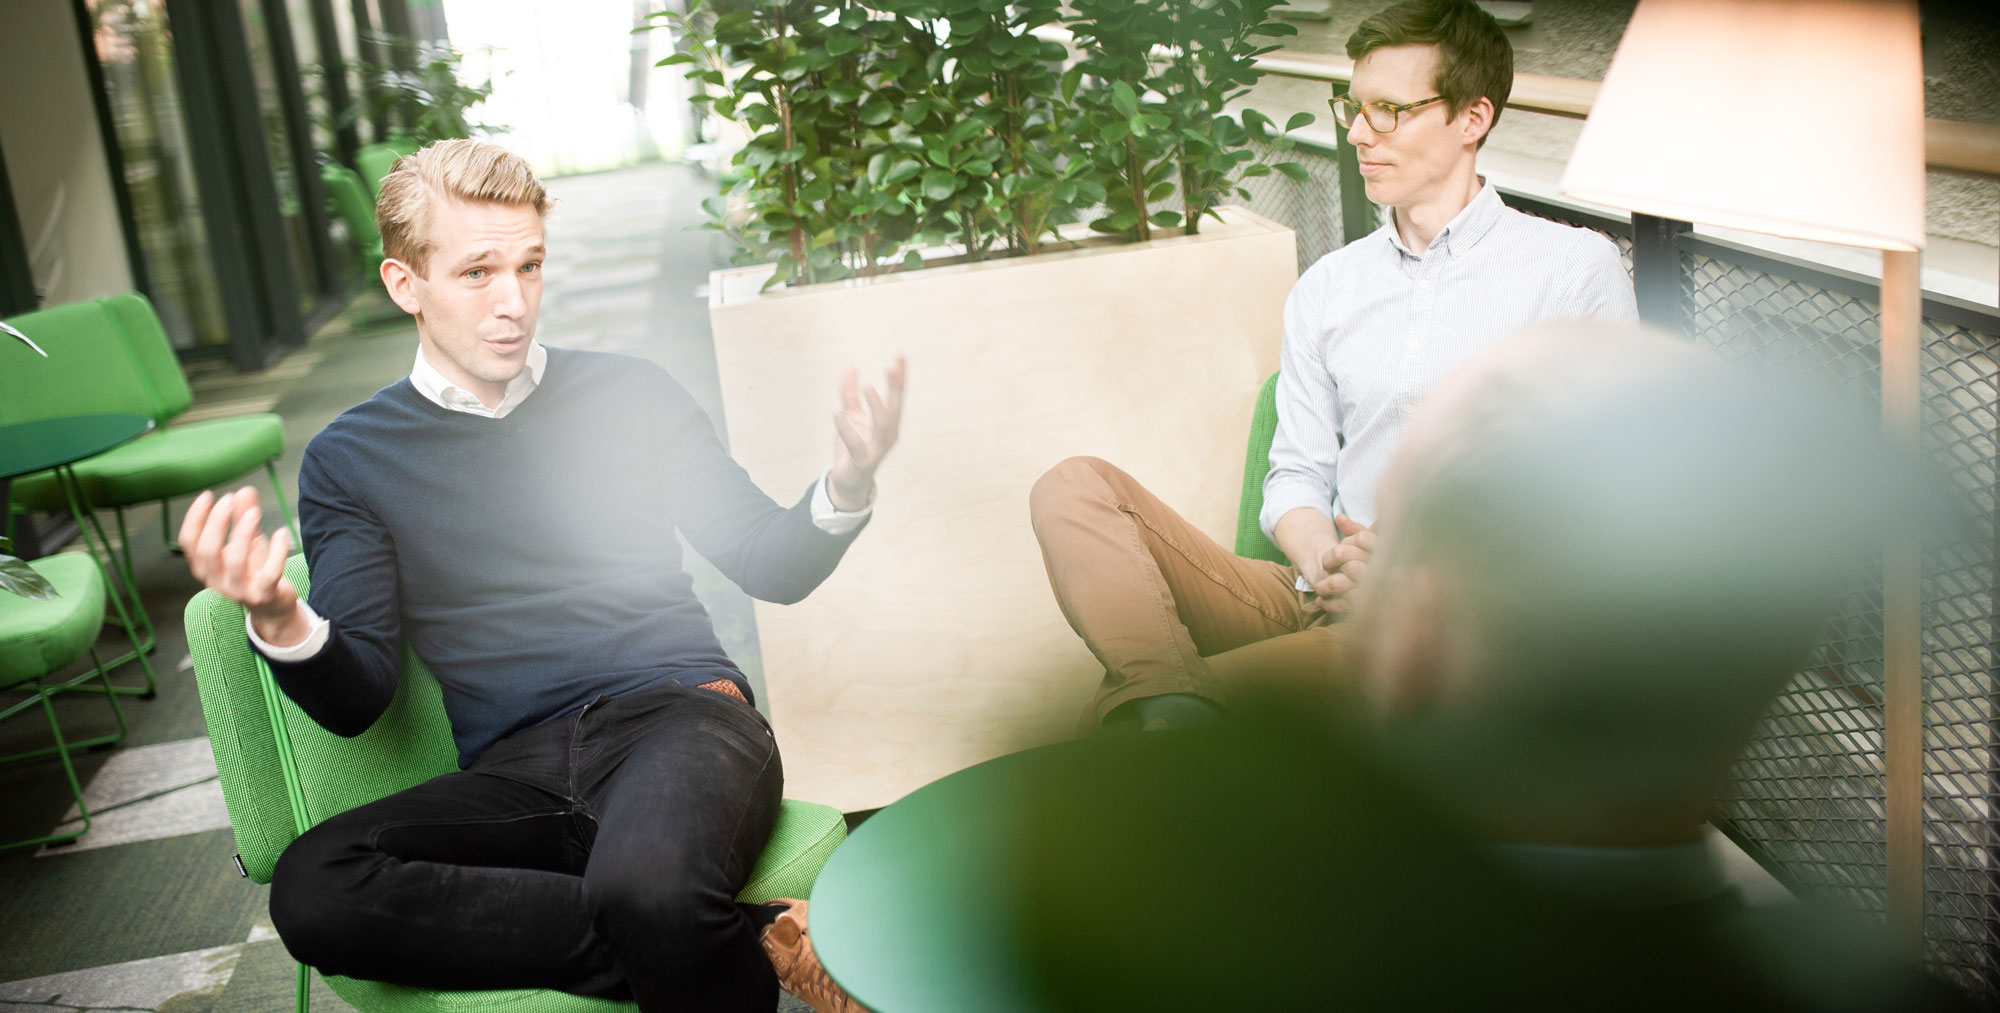 startup-stories-chalmers-ventures-landscape-reveibe-energy